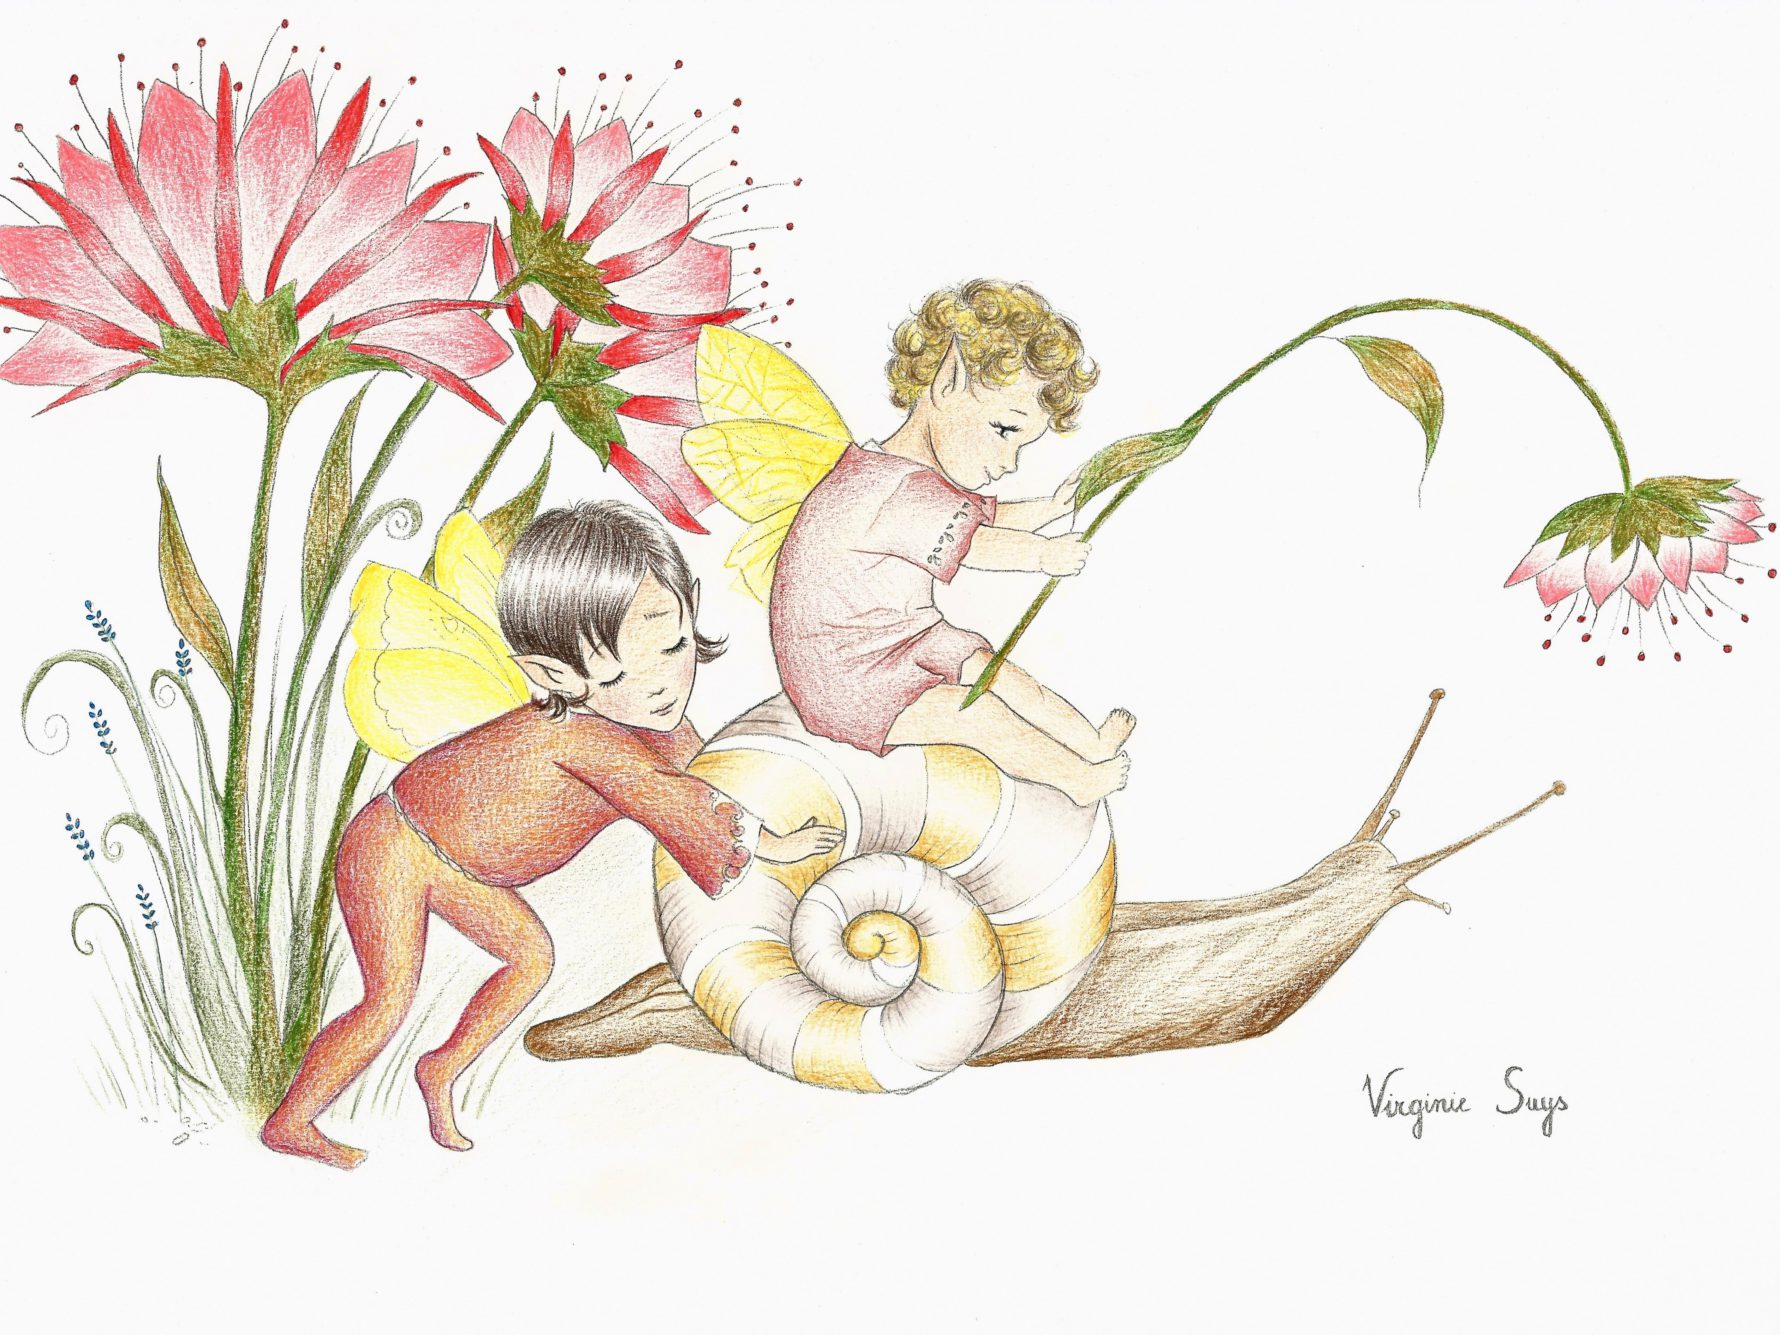 Virginie Suys Snail and fairys in red yellow brown illustration